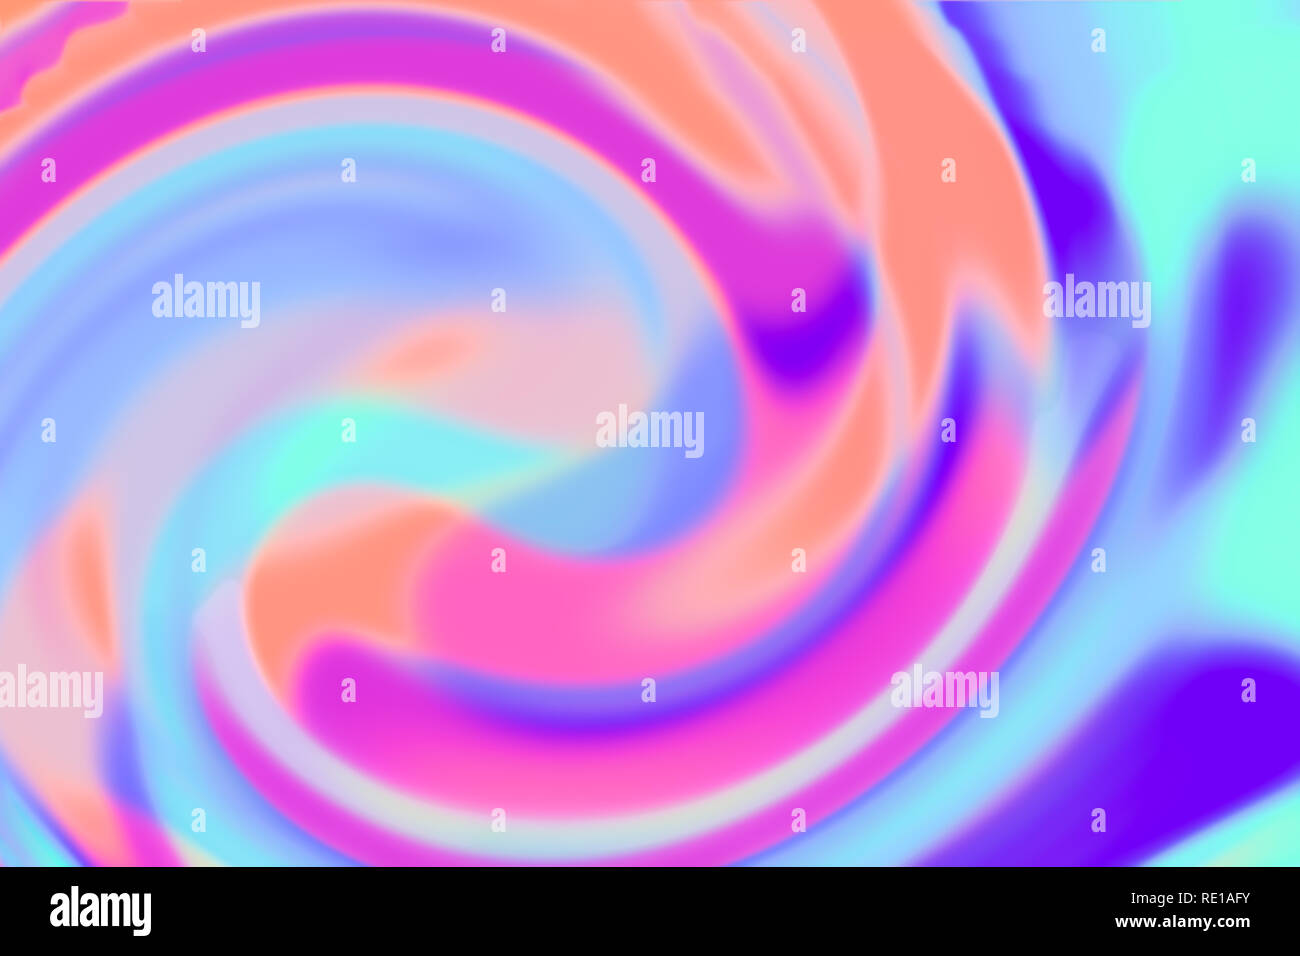 Defocused background of twisted smooth multicolored holographic paper. - Stock Image